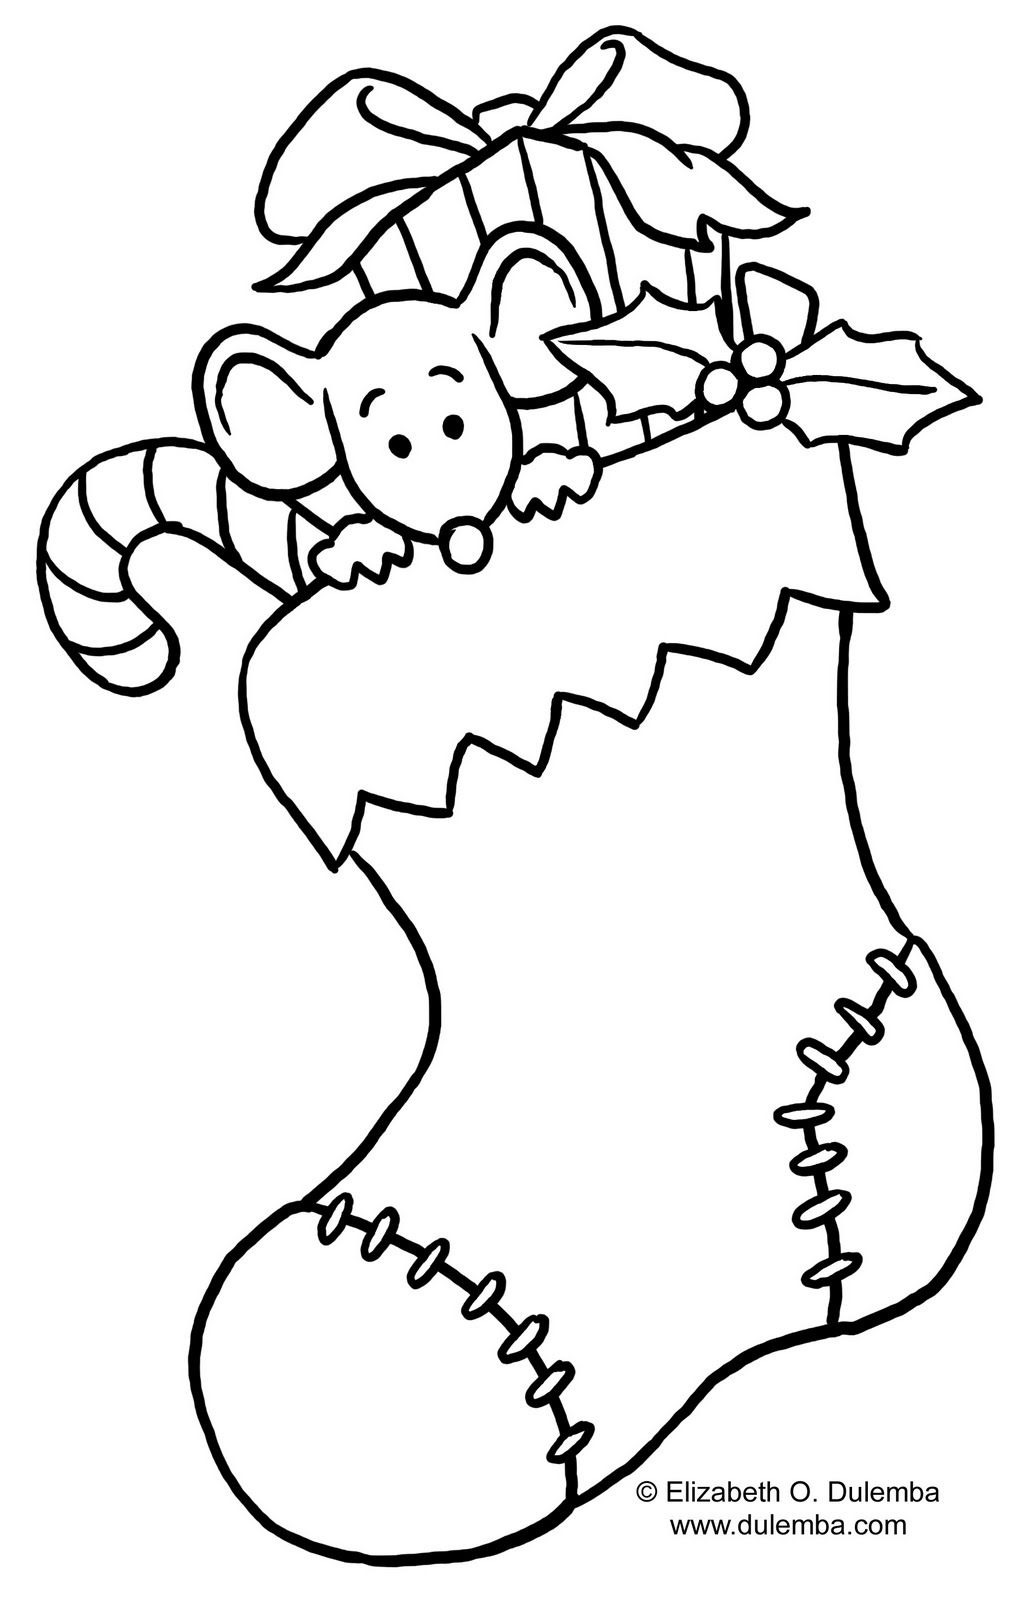 coloring pages christams - photo#6